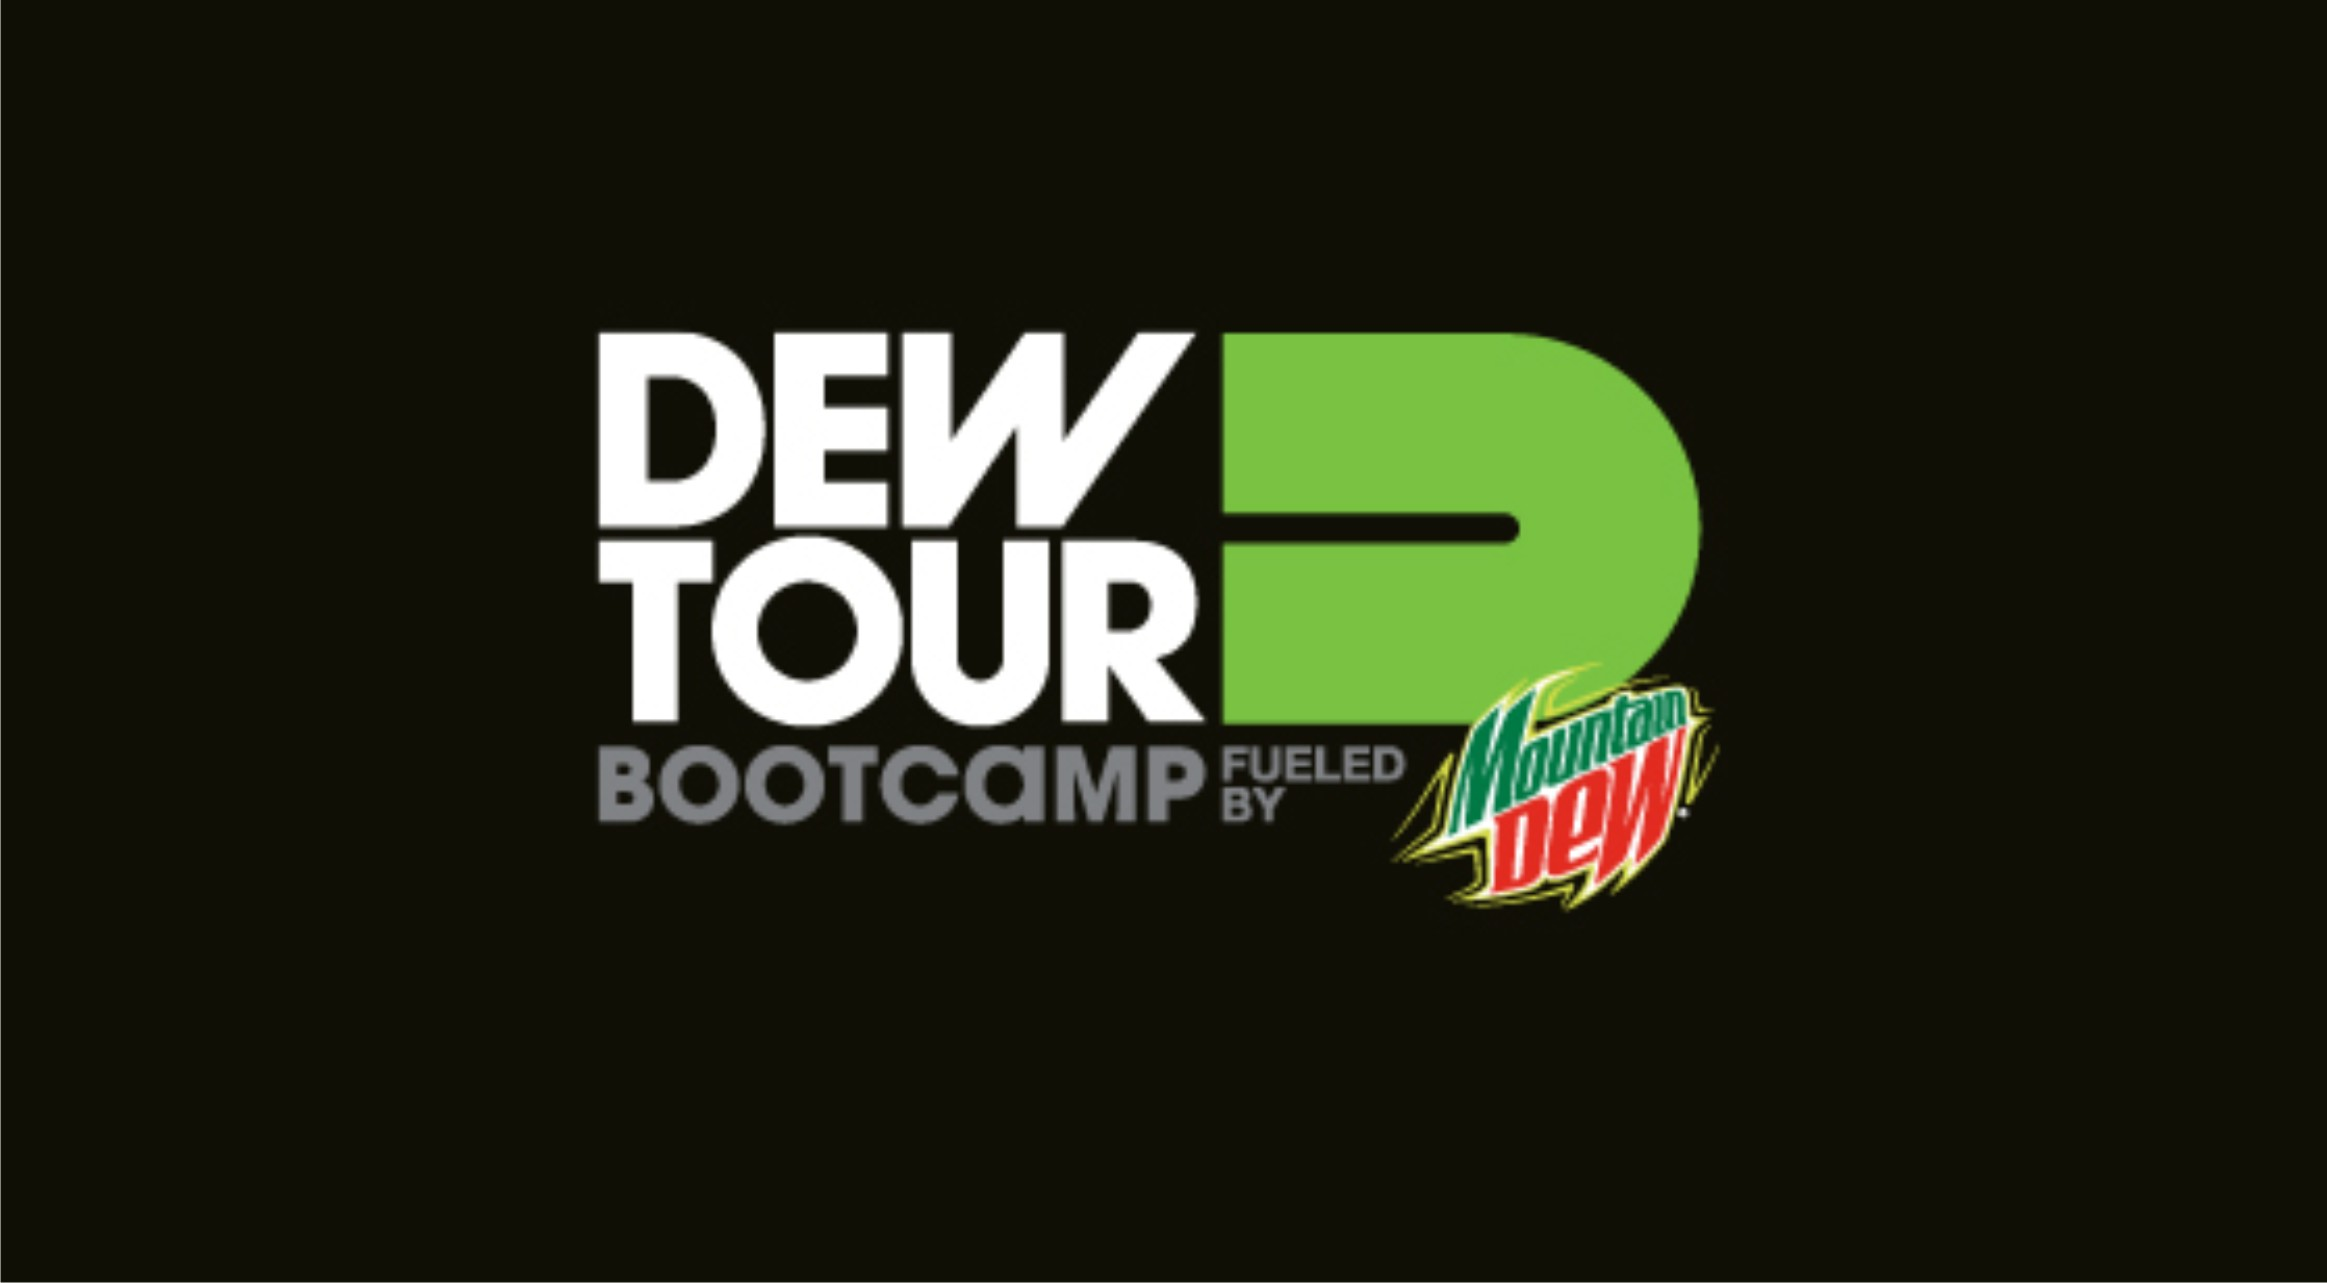 Dew Tour Bootcamp bring BMX and Skateboarding to a campus near you